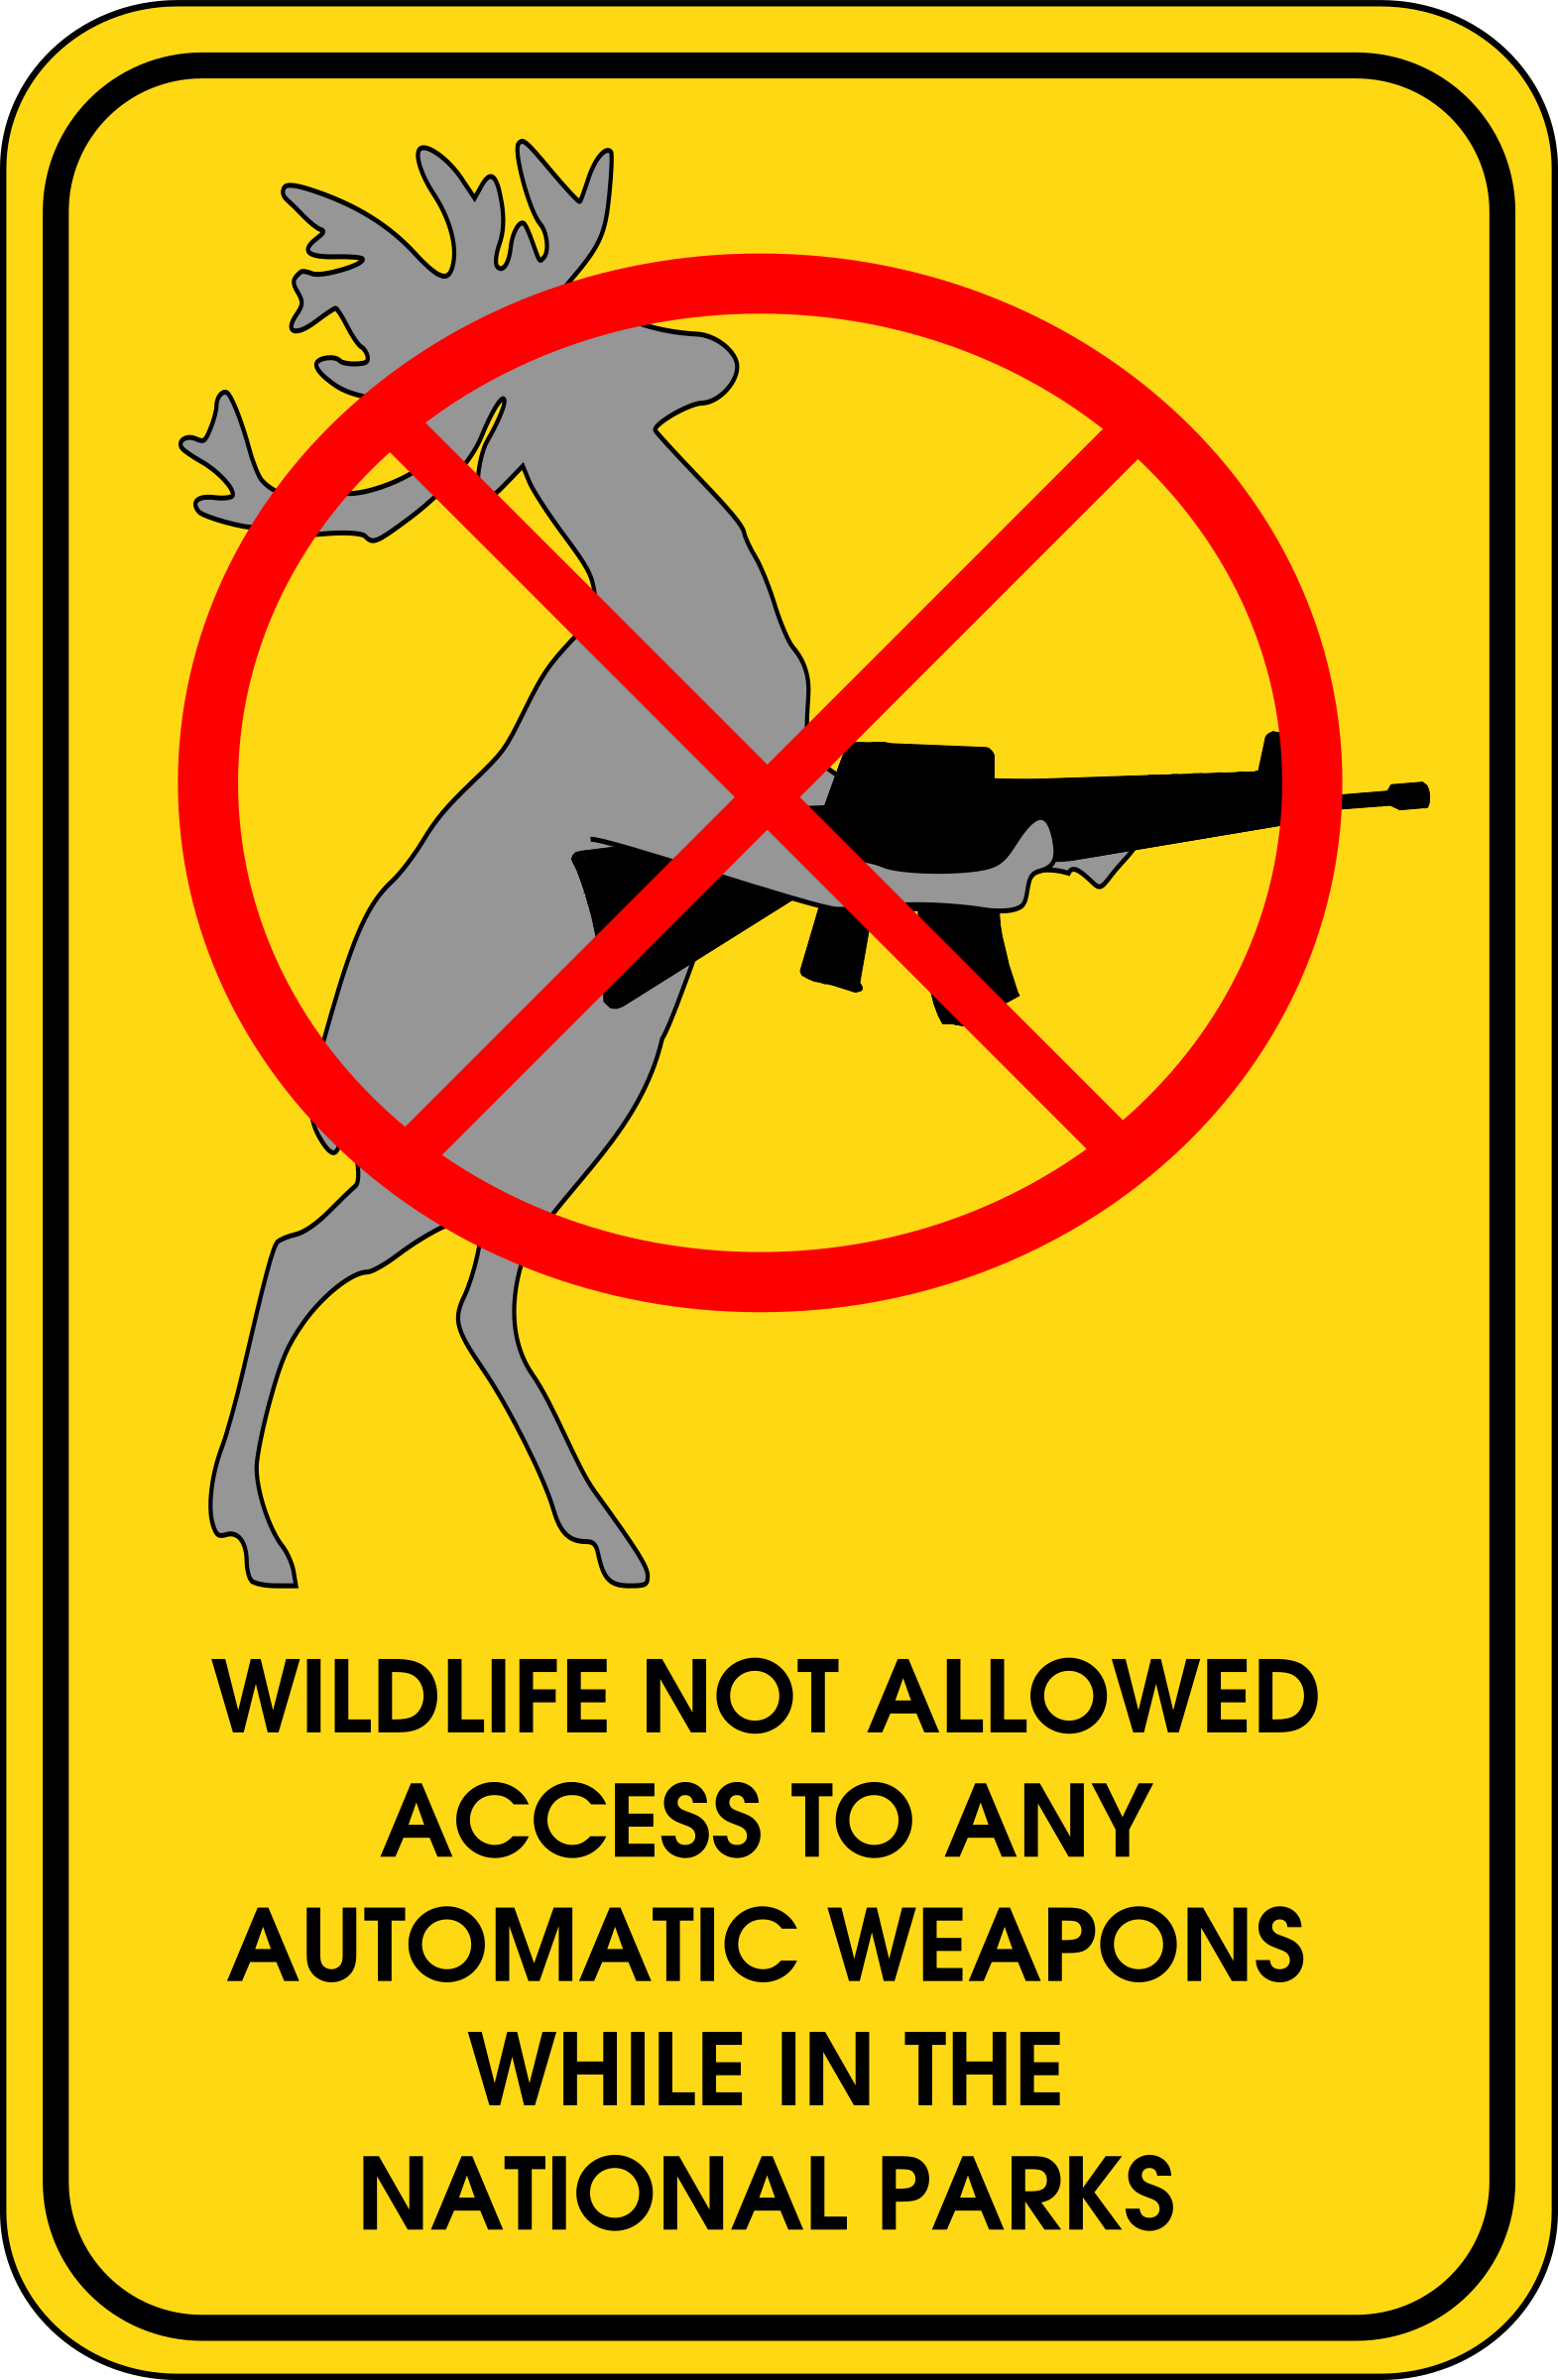 Wildlife Not Allowed To Access Automatic Weapons While In The National Parks by beason